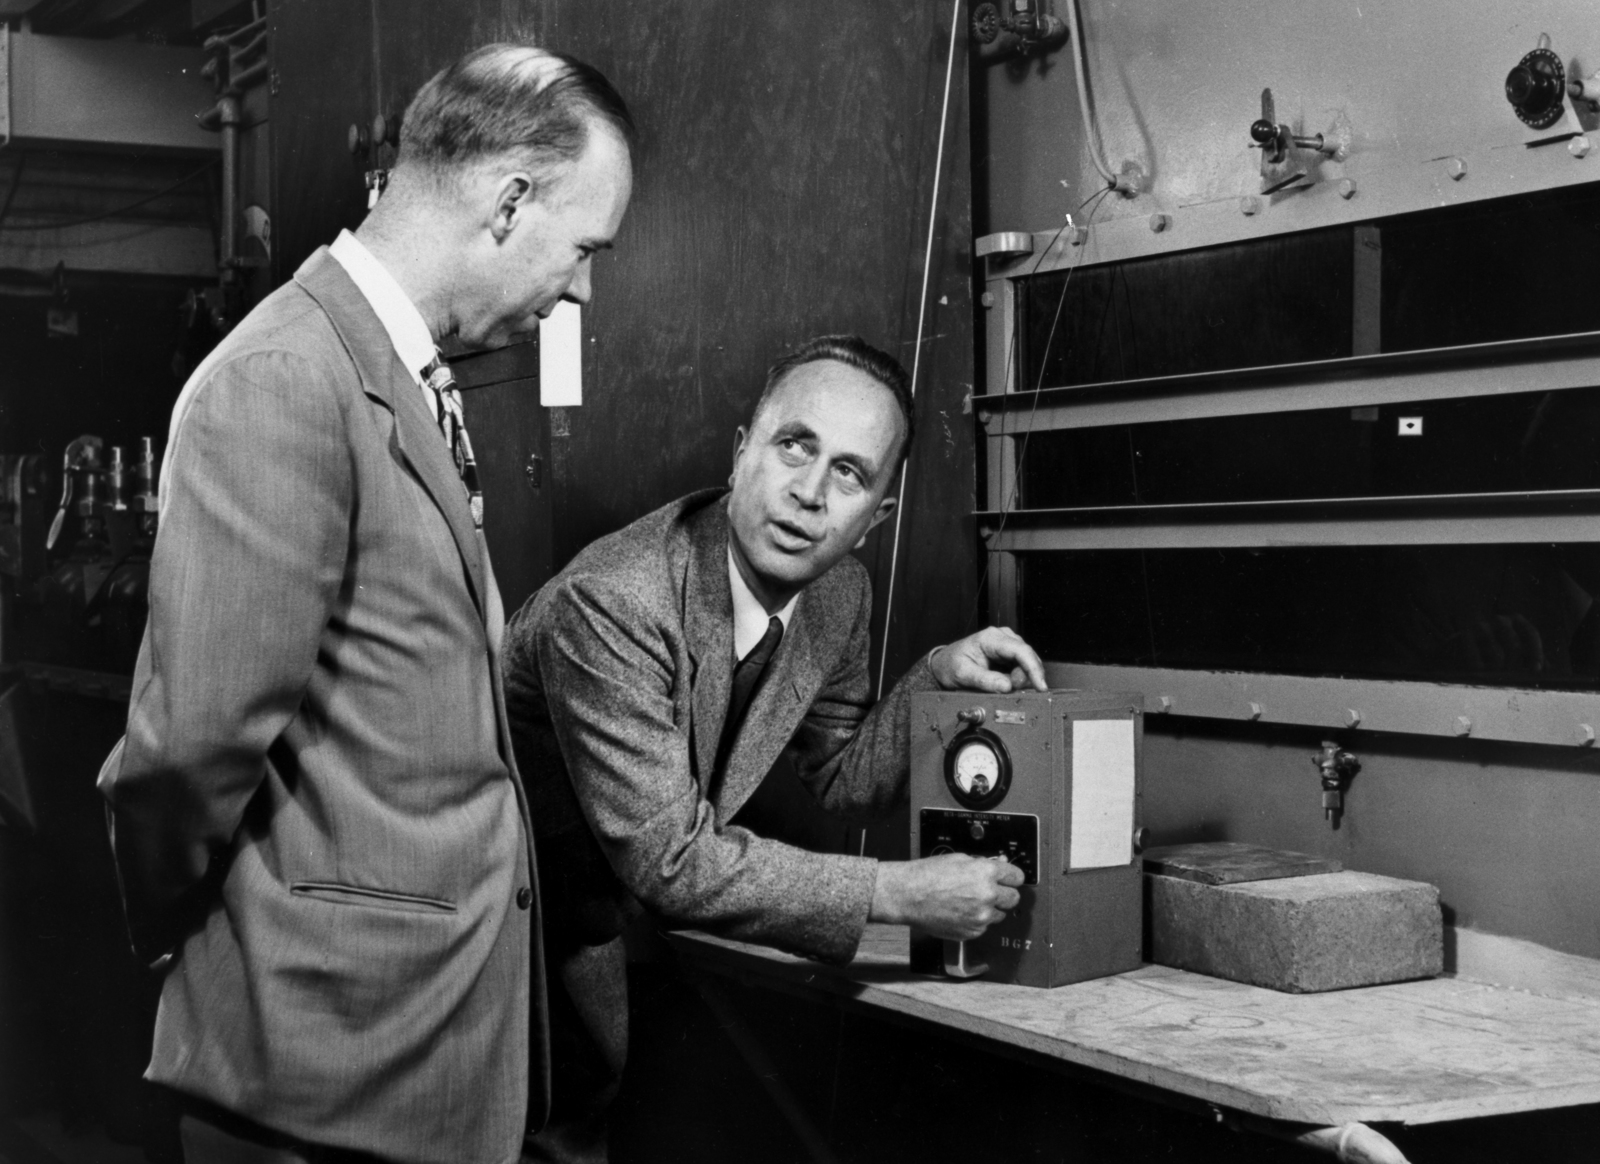 William Brobeck and Dr. Joseph Gilbert Hamilton, taken in 1955 or 1956 by  California Academy of Sciences, Moss Photography of San Francisco. Morgue  1956-12 (P-2) - U.S. National Archives & DVIDS Public Domain Search